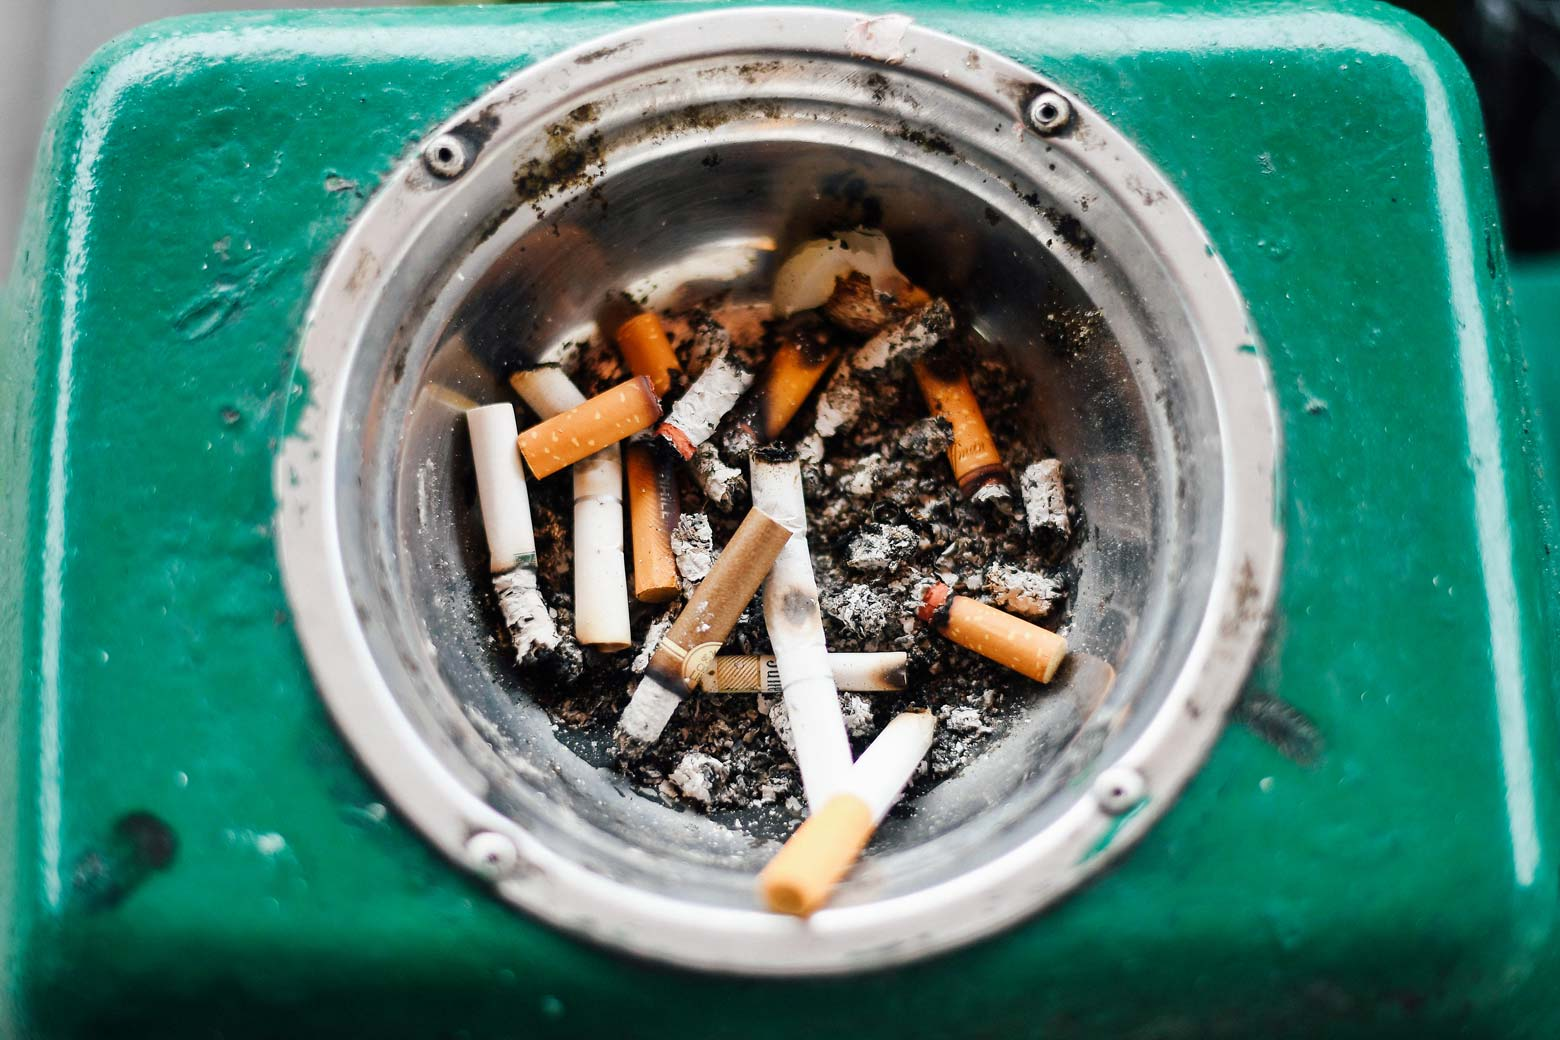 Used cigarette butts in a dirty ashtray.